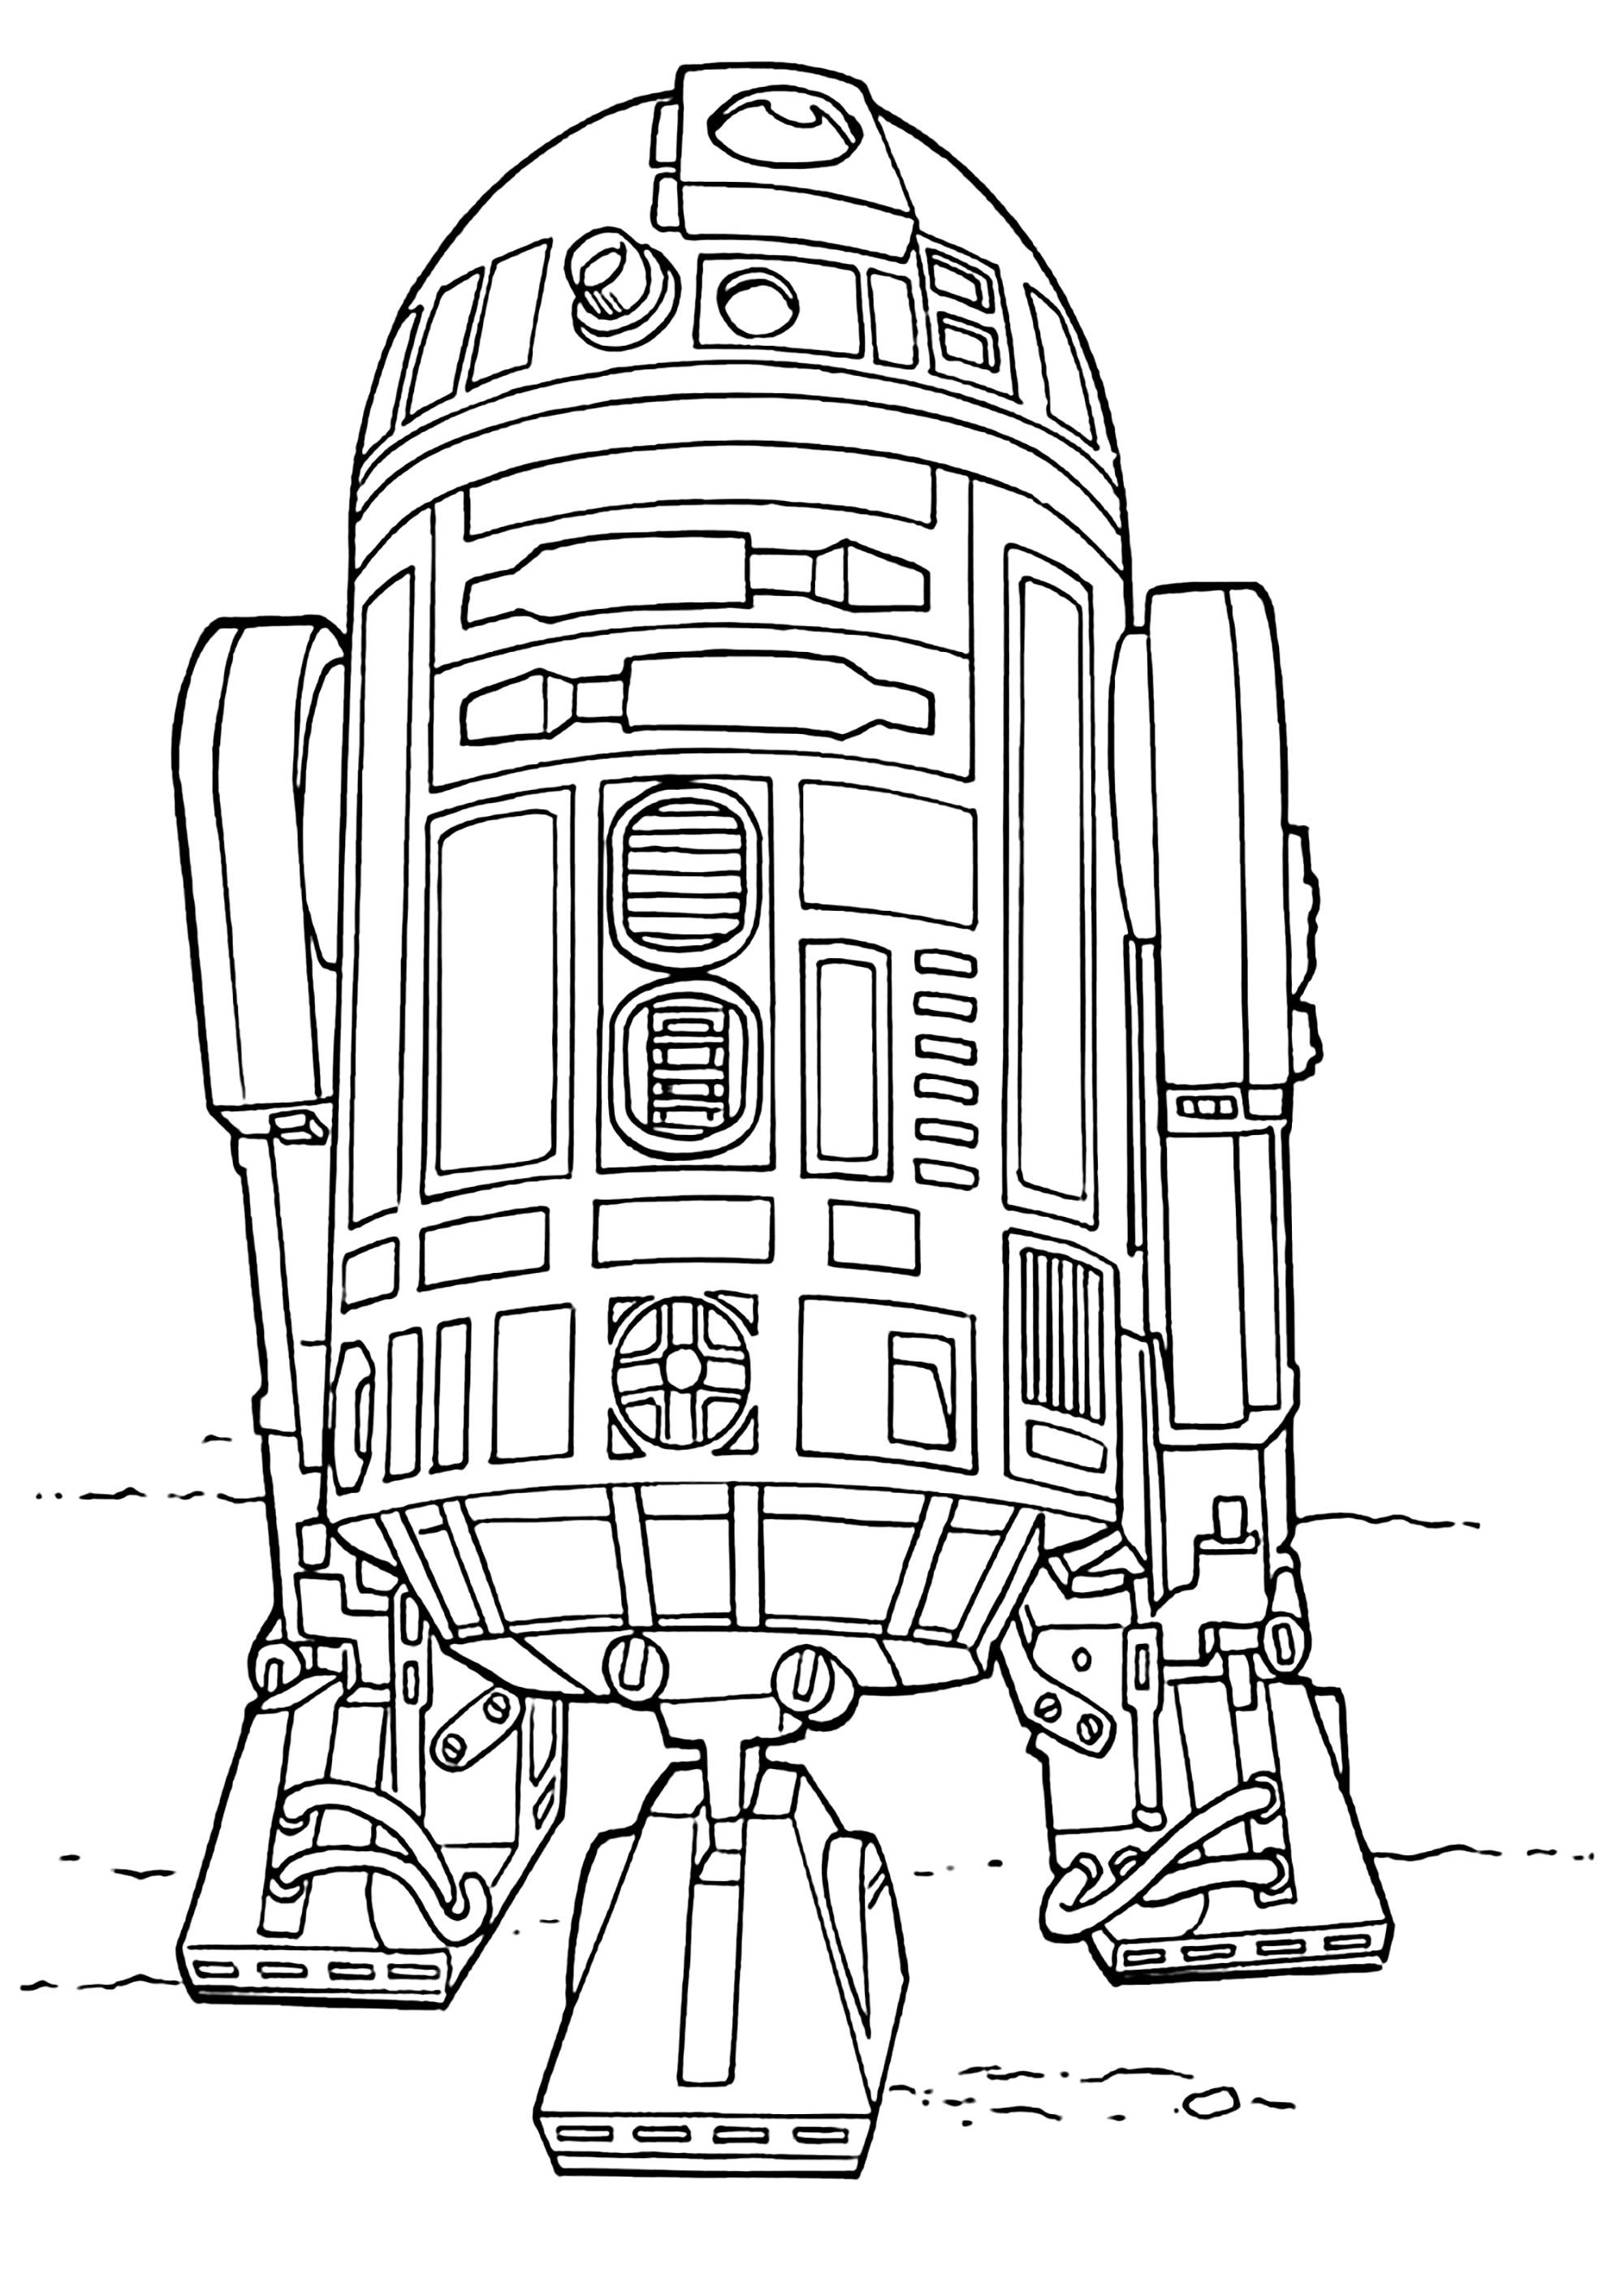 star wars coloring images cool star wars coloring page free coloring pages online star images coloring wars